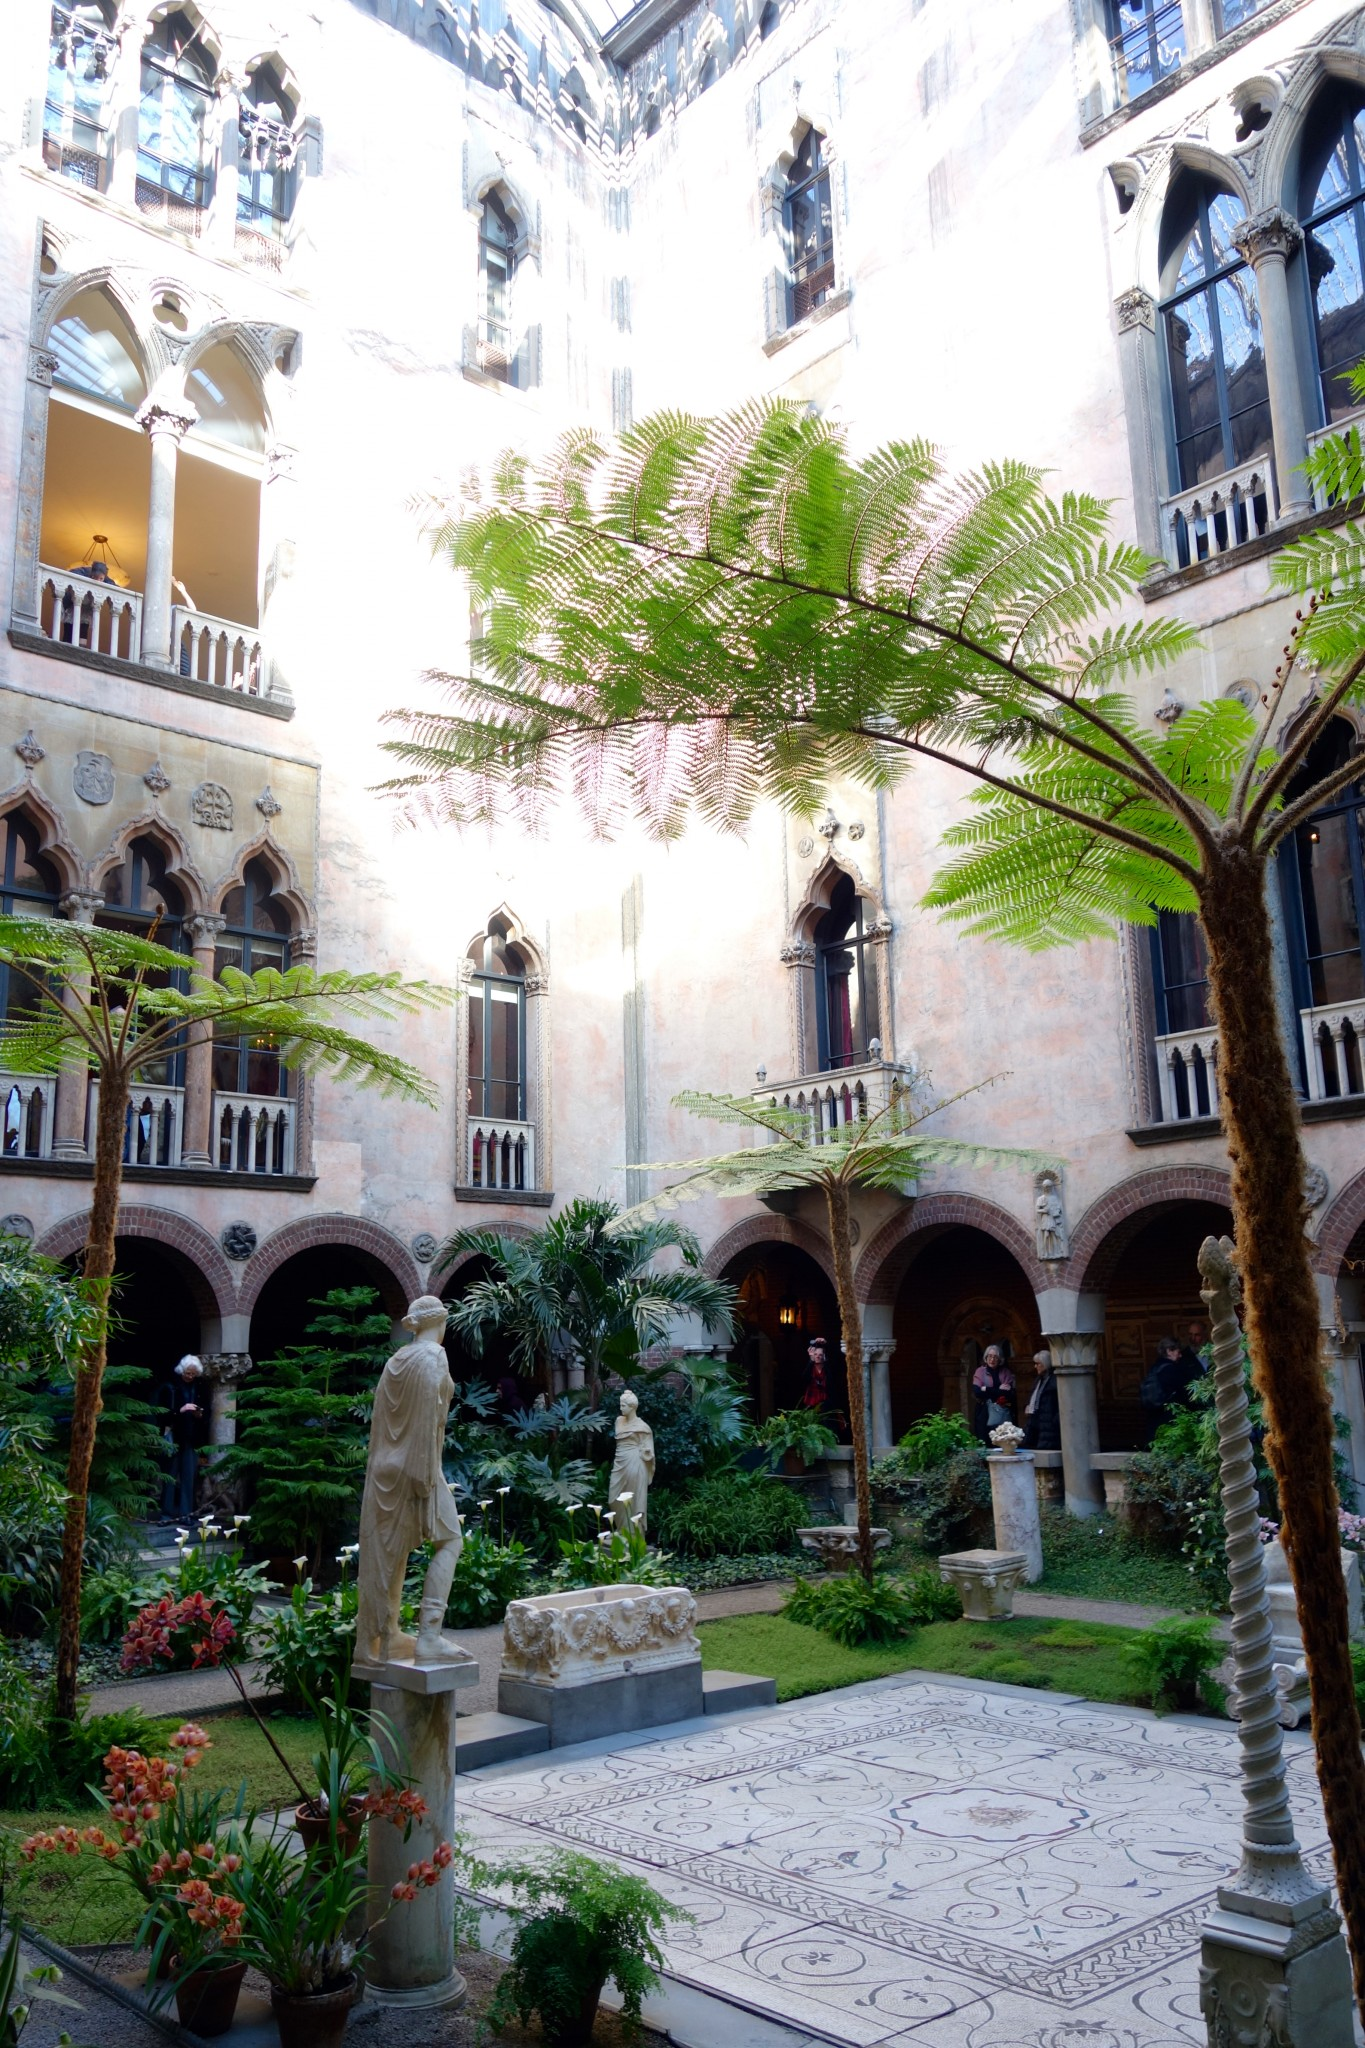 isabella stewart gardner museum, boston, the-alyst.com